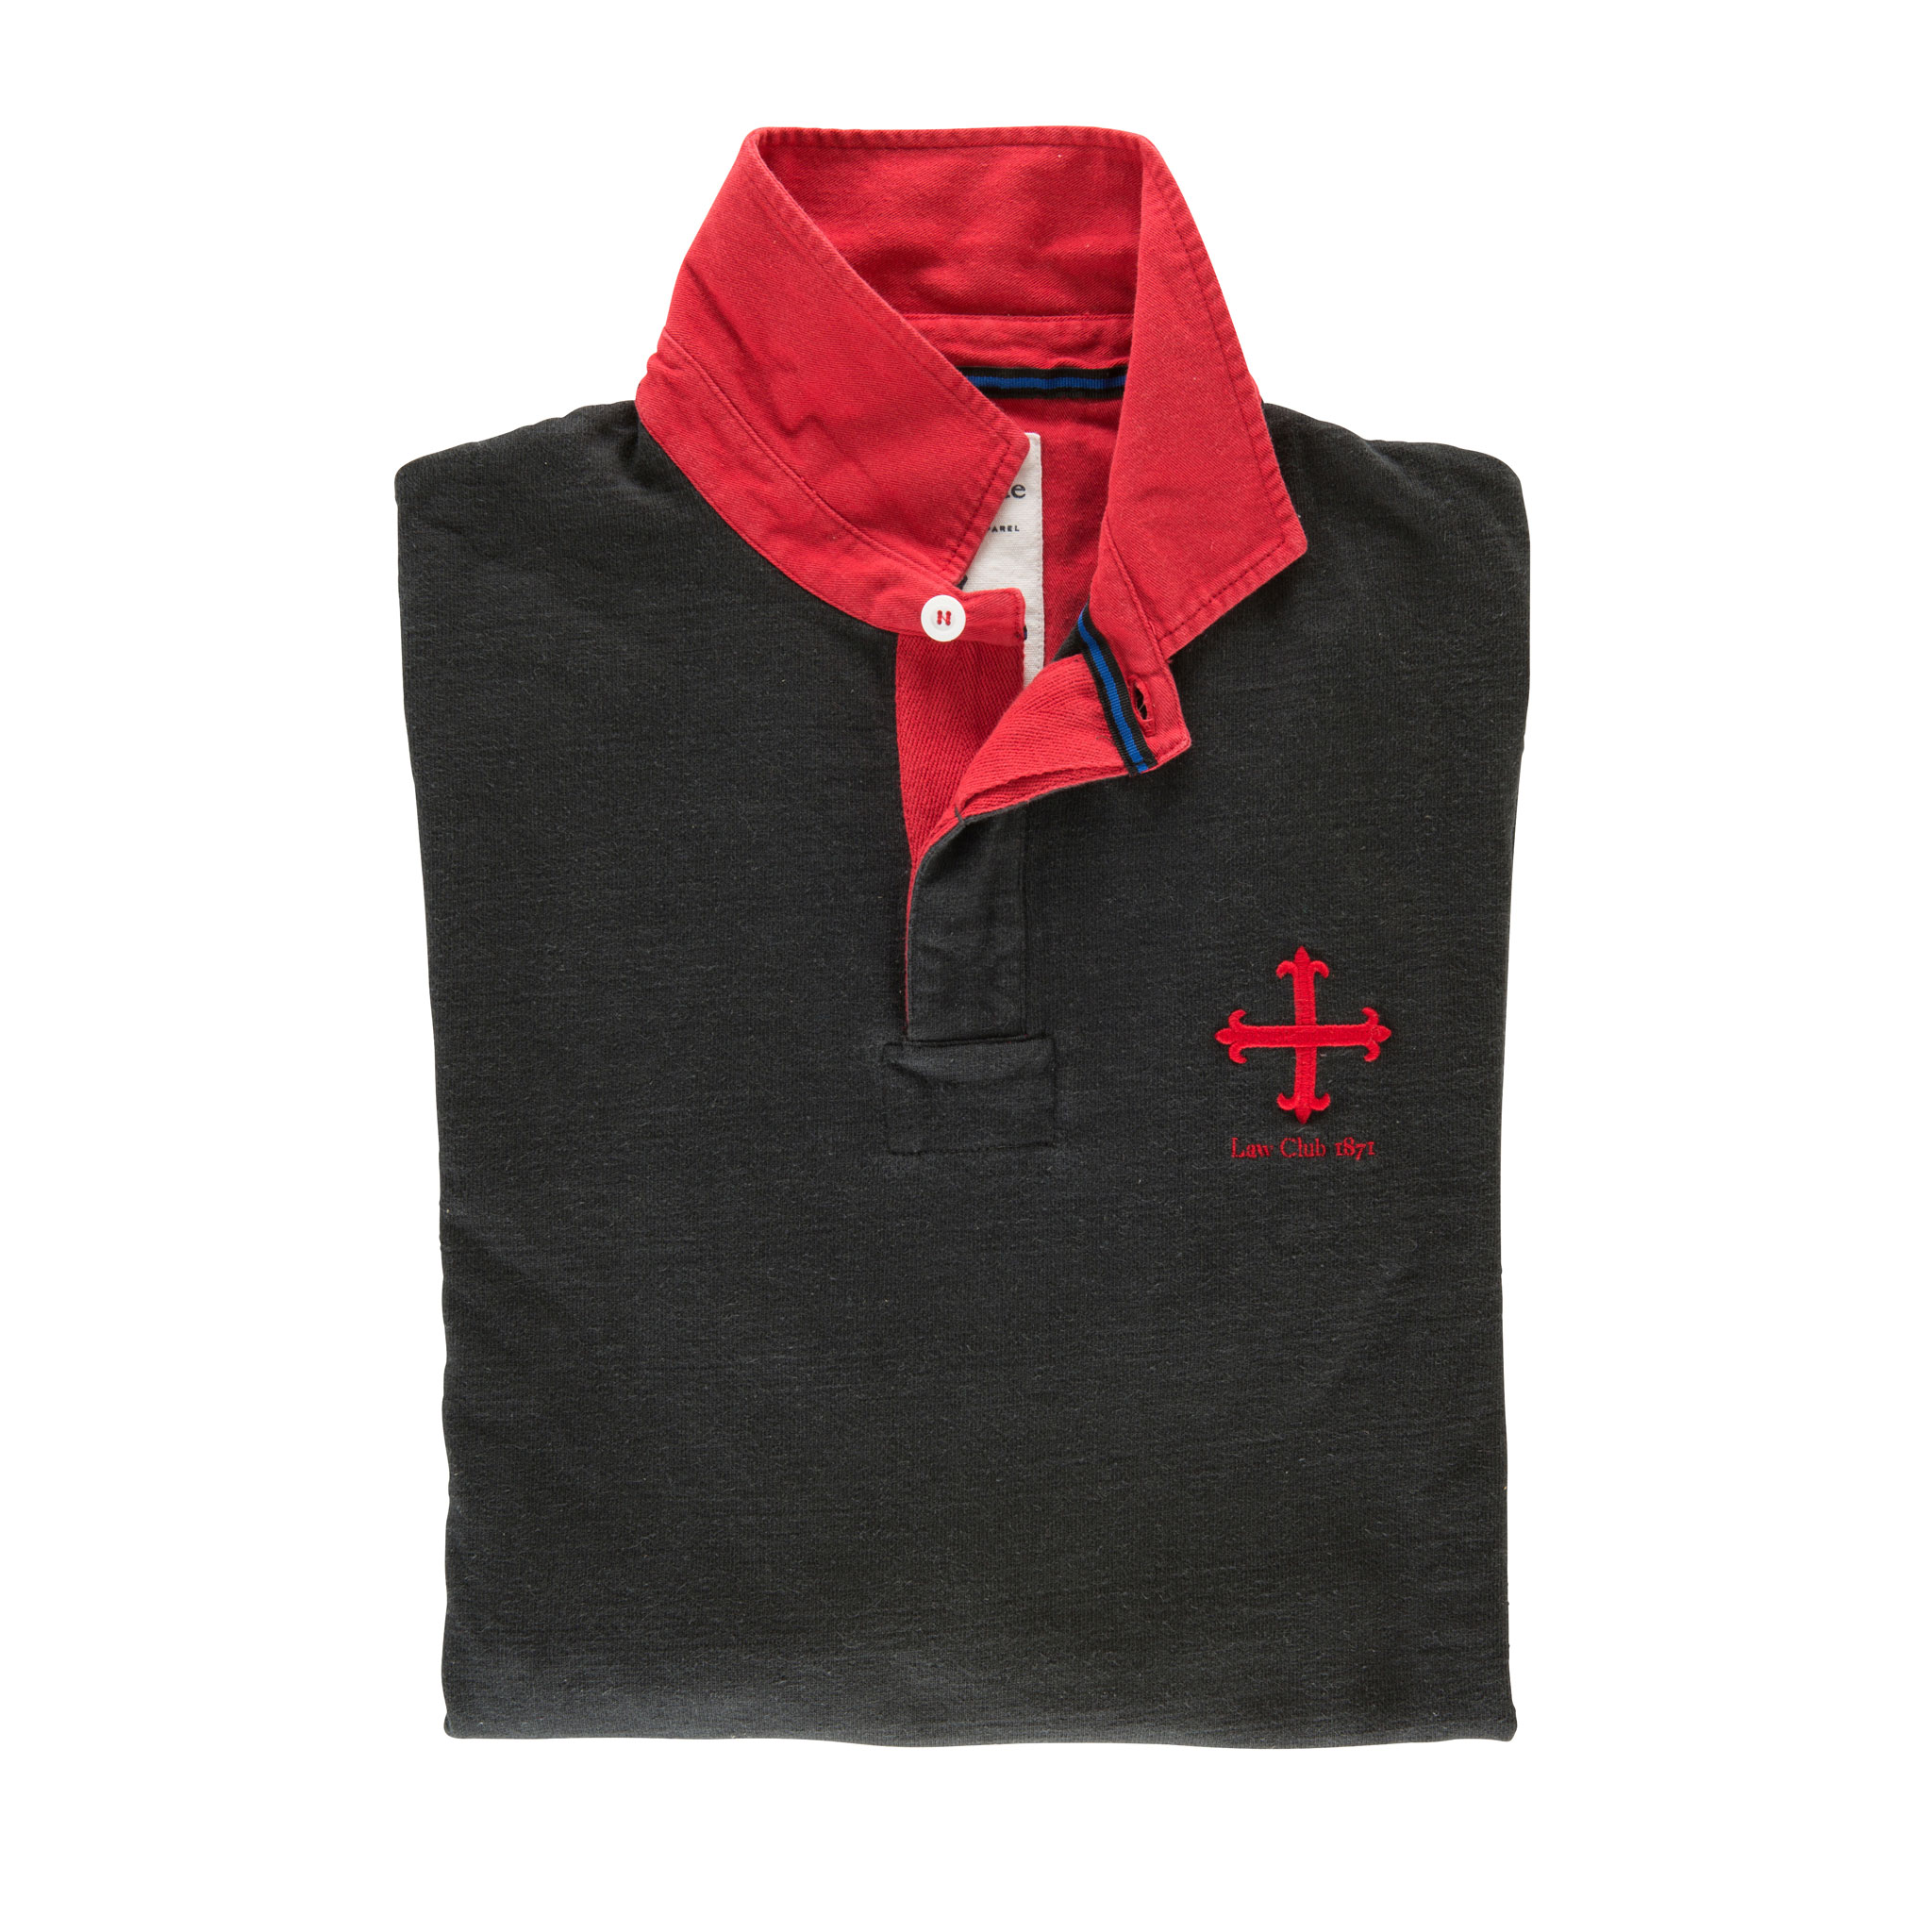 Law Club 1871 Rugby Shirt - folded